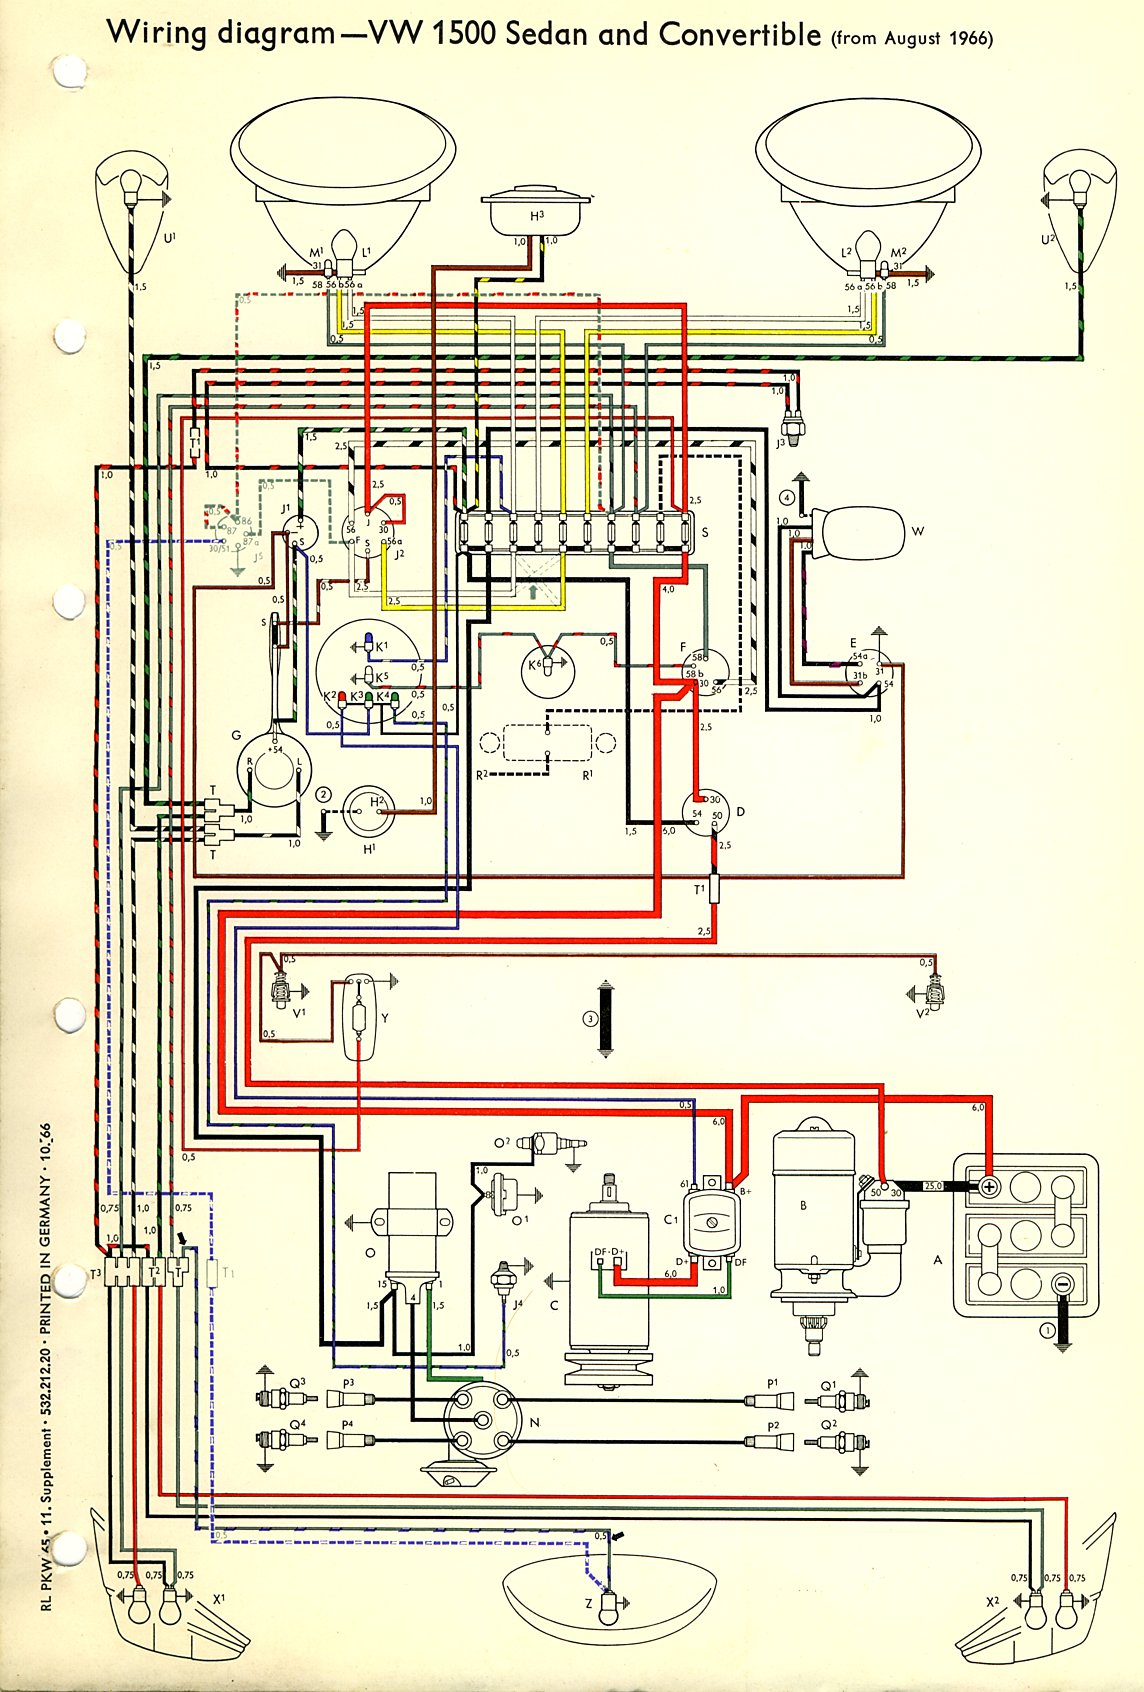 fuse diagram for 1973 vw super beetle example electrical wiring rh cranejapan co 1974 Volkswagen Wiring Diagrams 69 VW Beetle Wiring Diagram